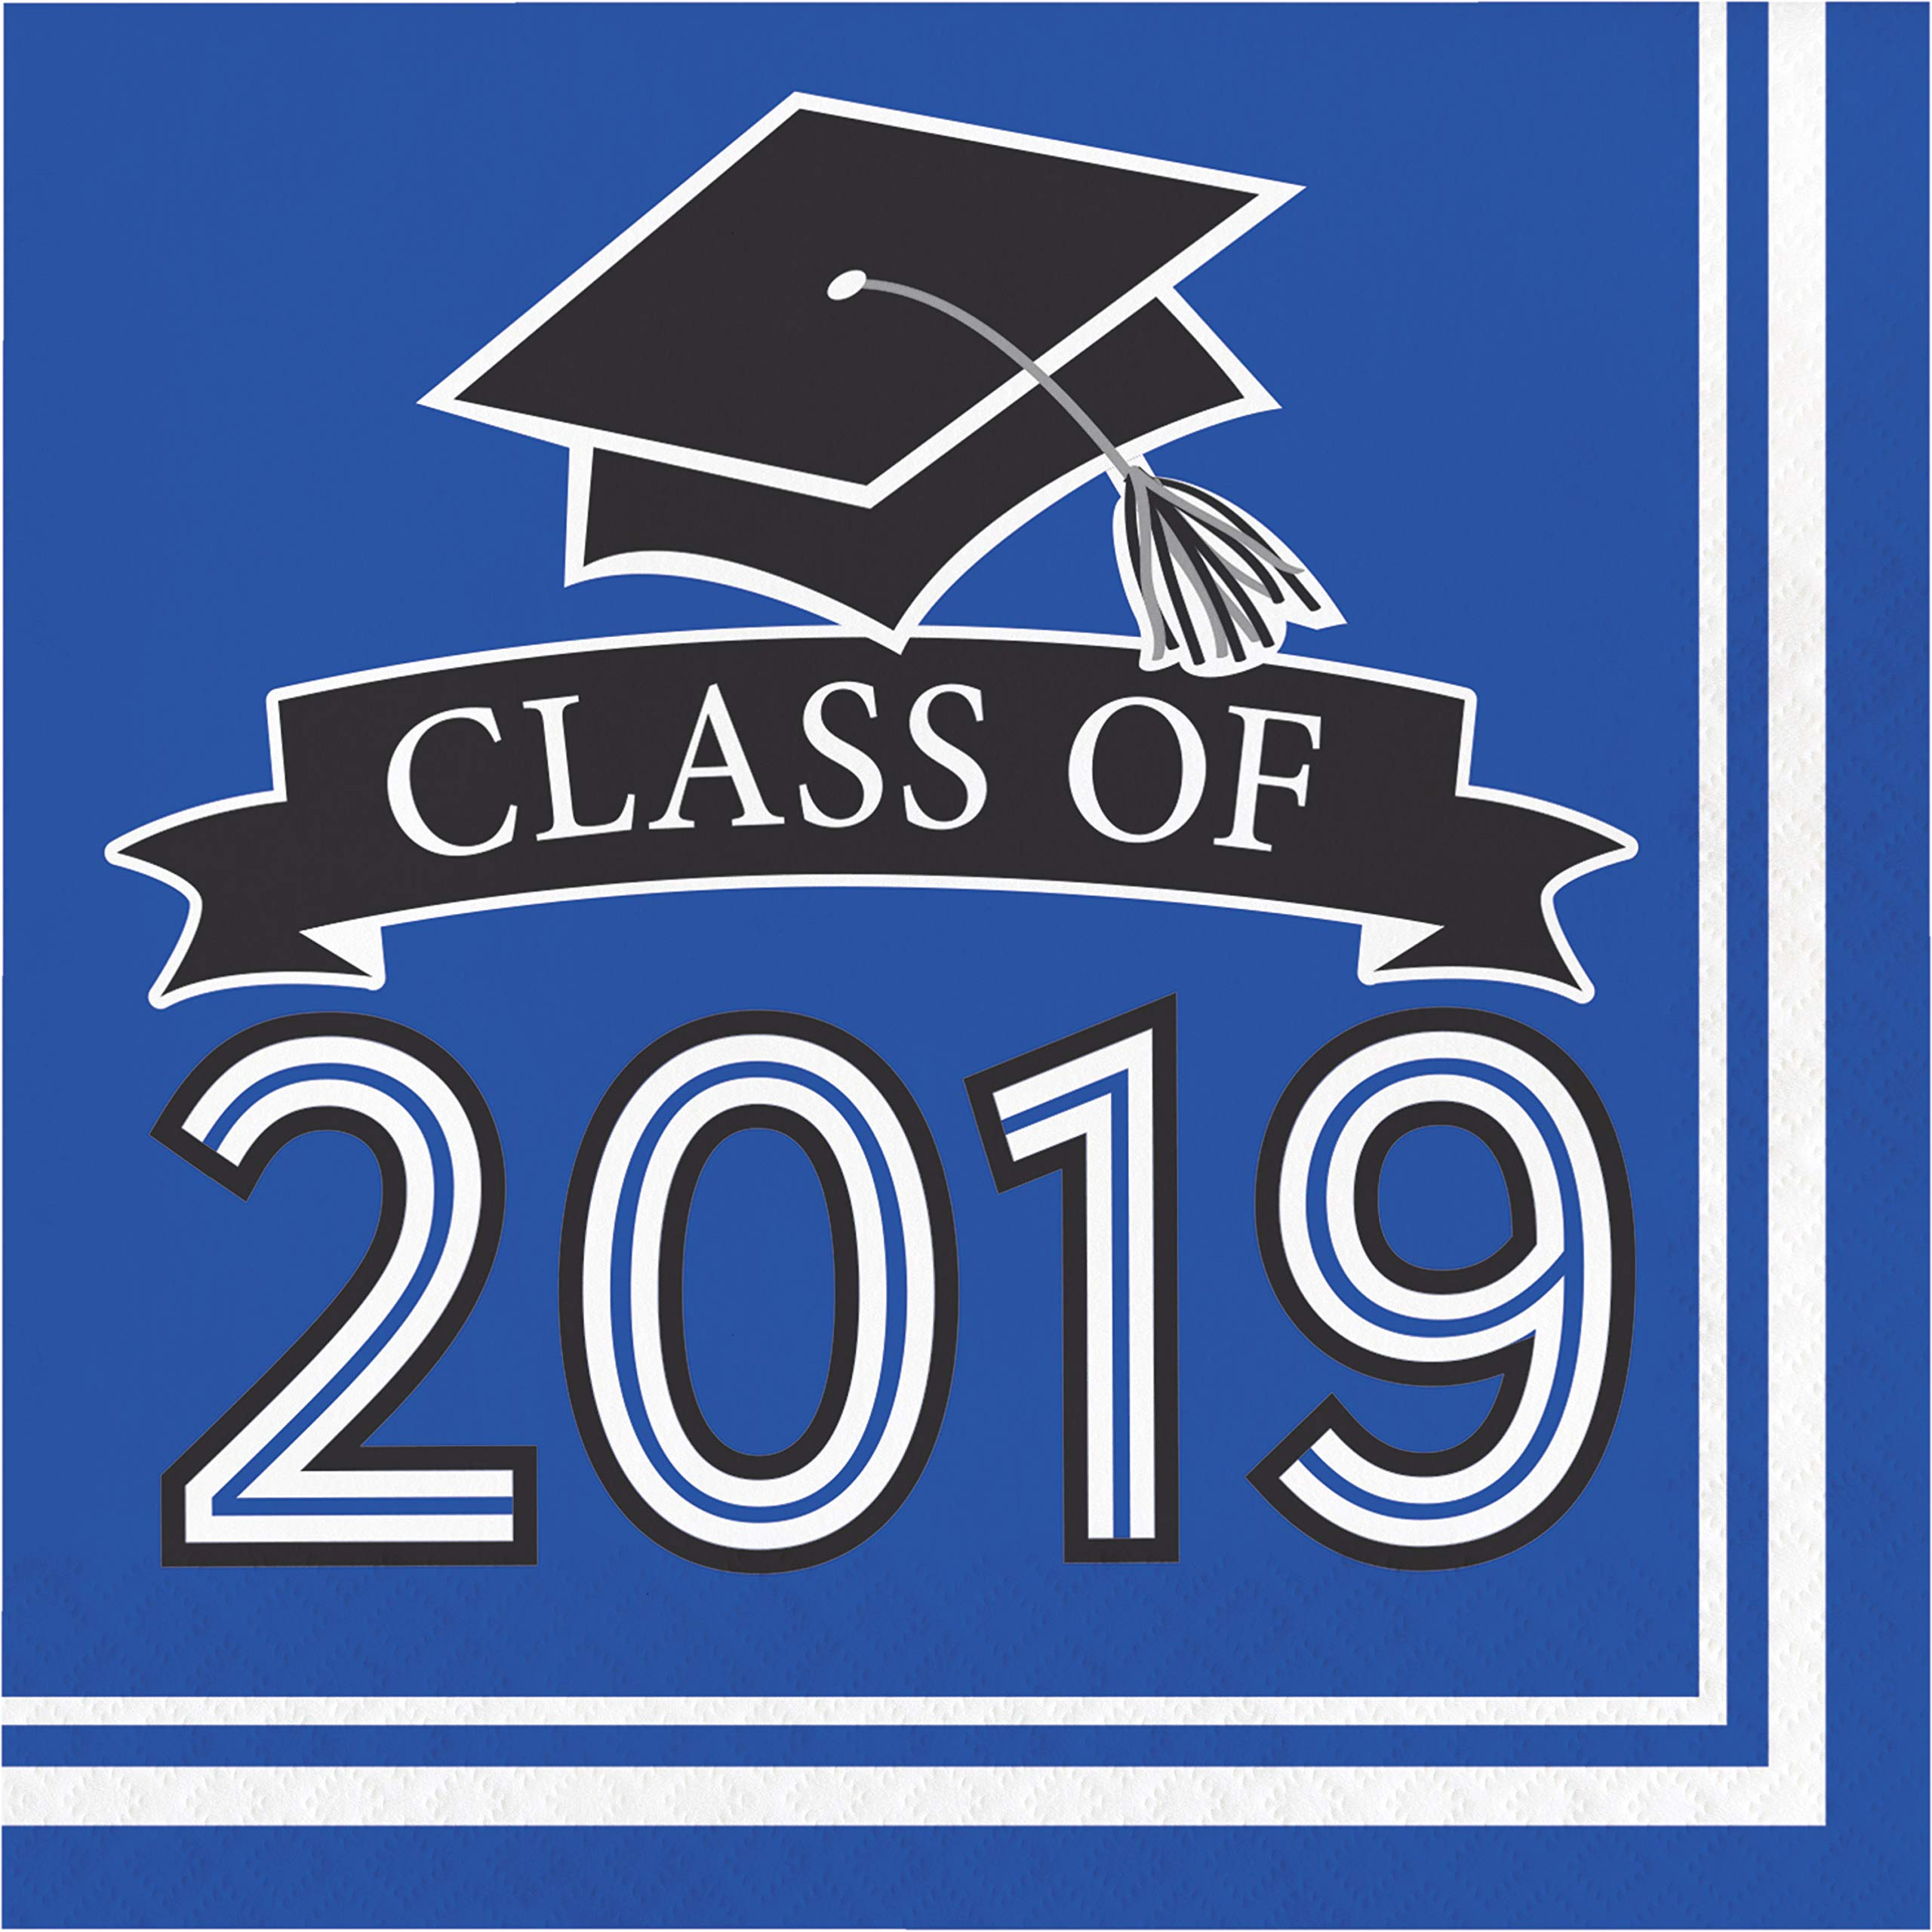 Creative Converting 335415case Blue Class Of 2019 Napkins 6.5'',